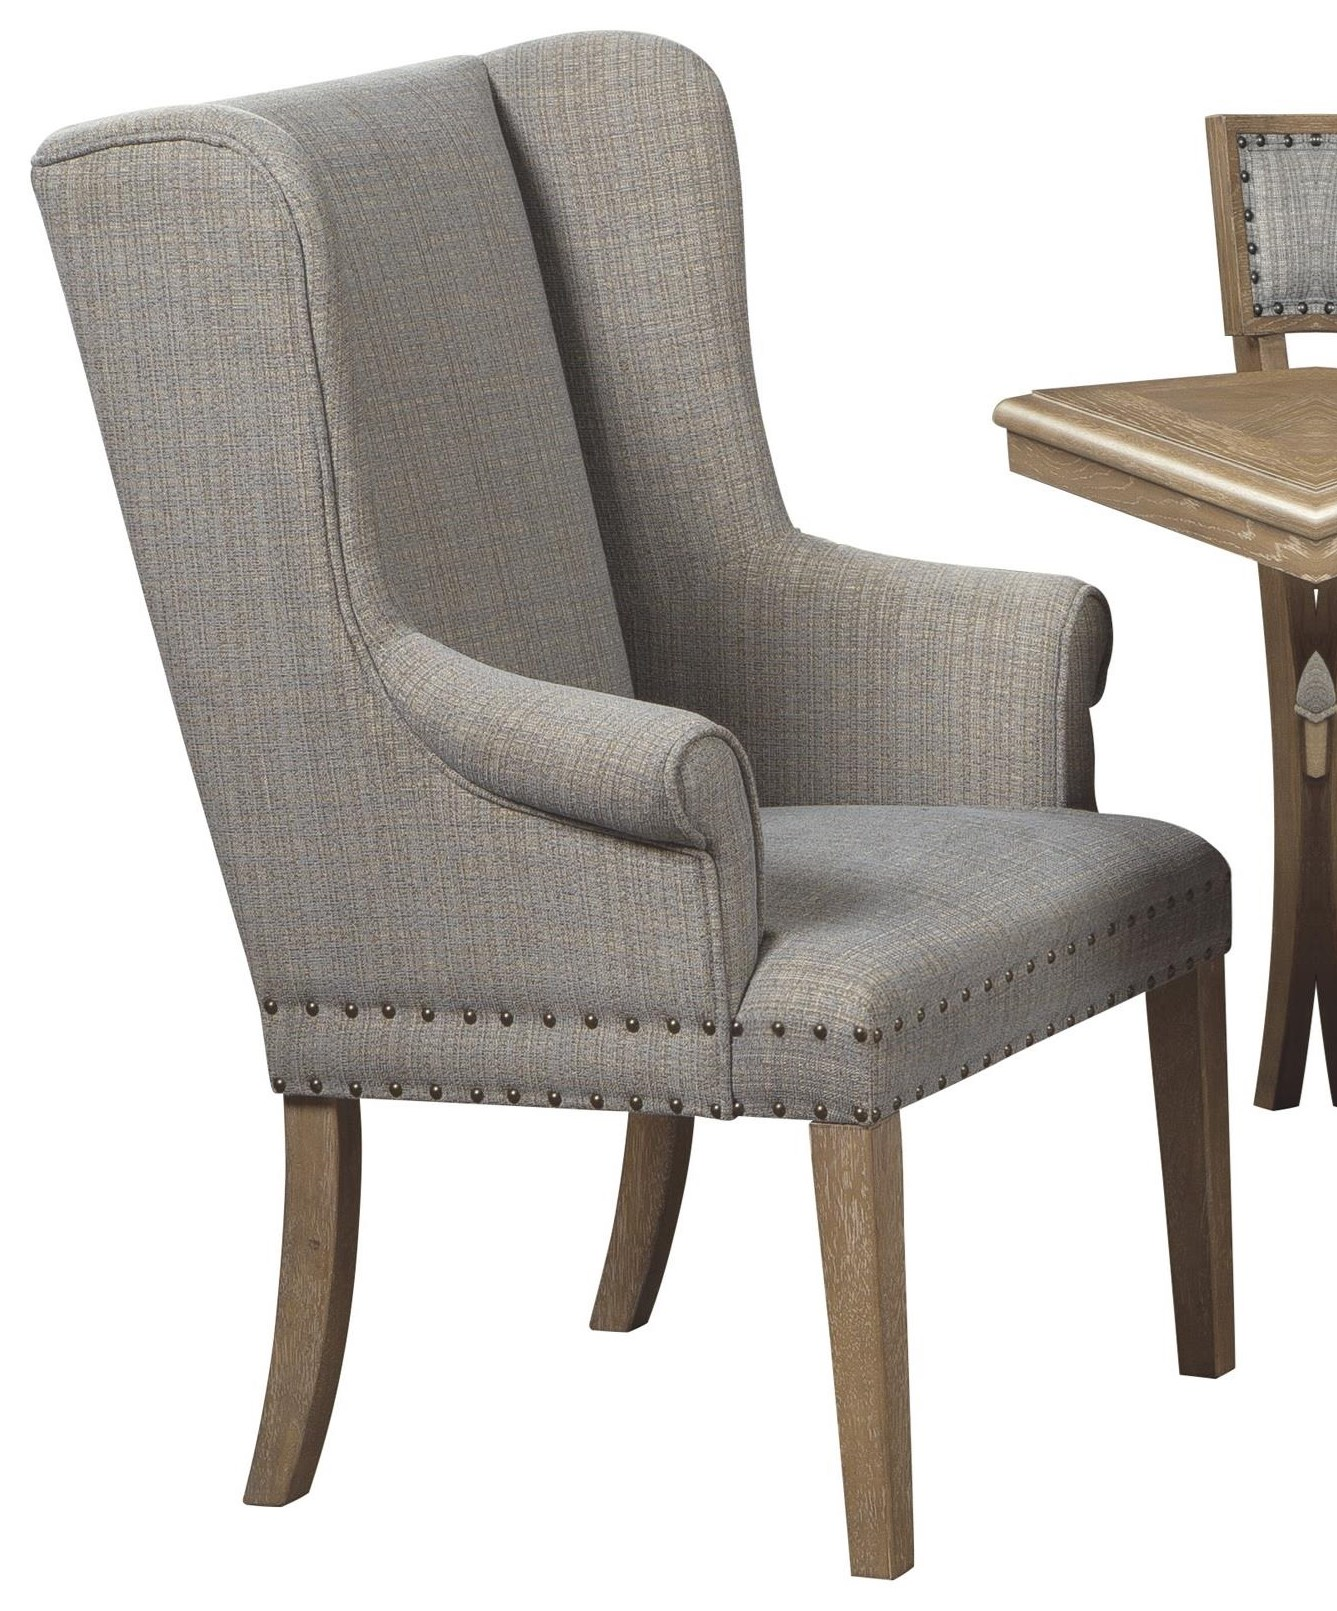 Ollesburg Ollesburg Arm Chair by Ashley at Morris Home